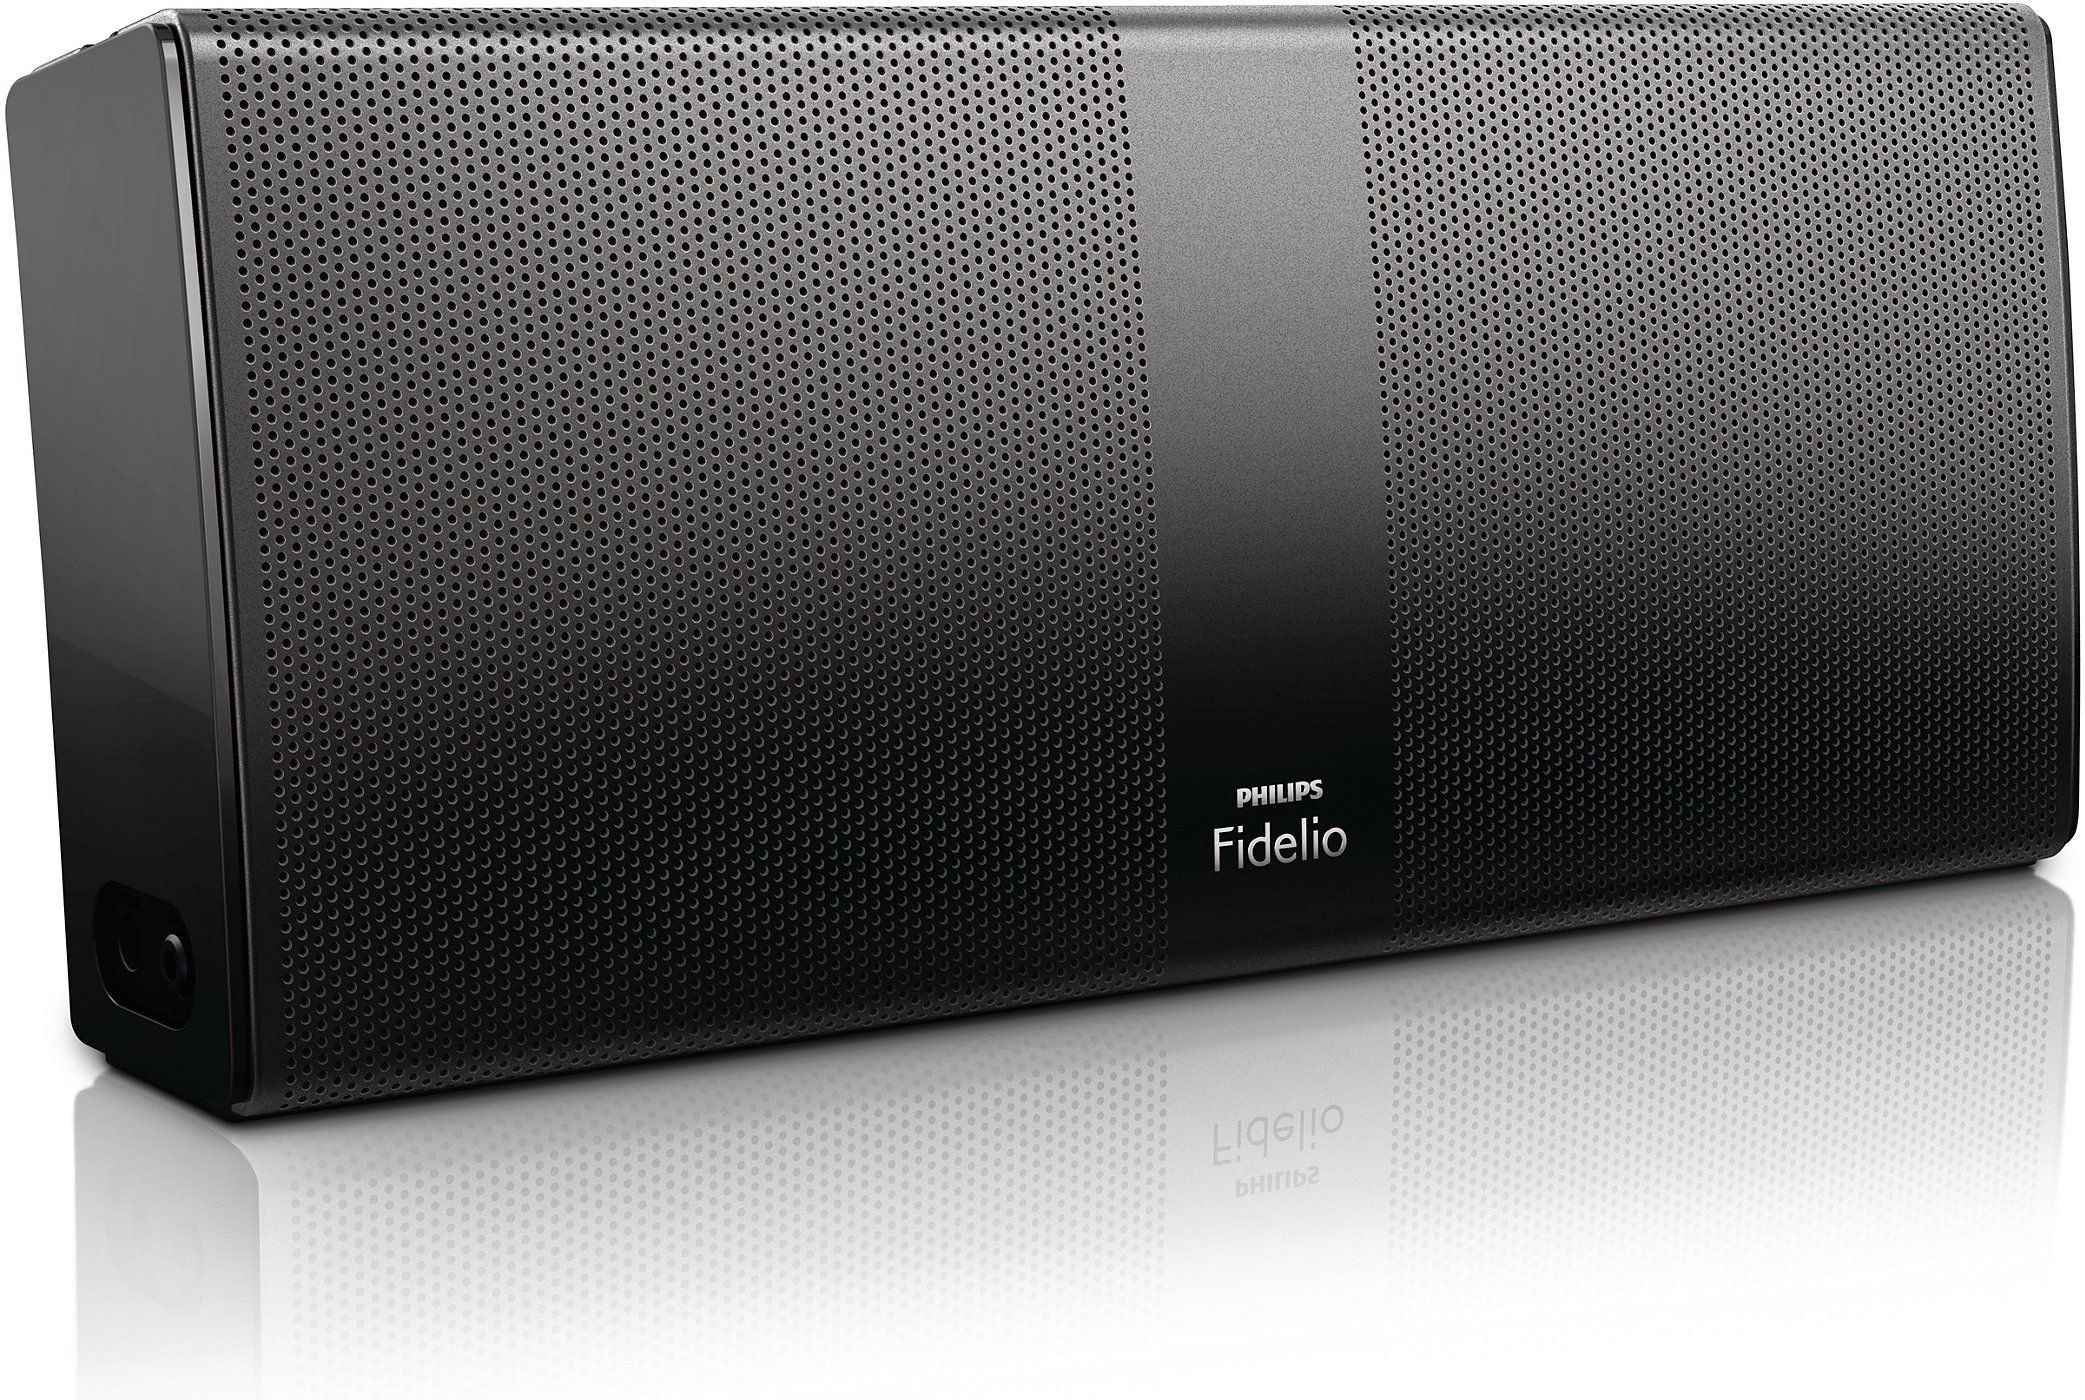 Philips Fidelio P8blk 37 Bluetooth Portable Speaker Black Quality Drivers Deliver Natural S Bluetooth Speakers Portable Wireless Speakers Portable Bluetooth